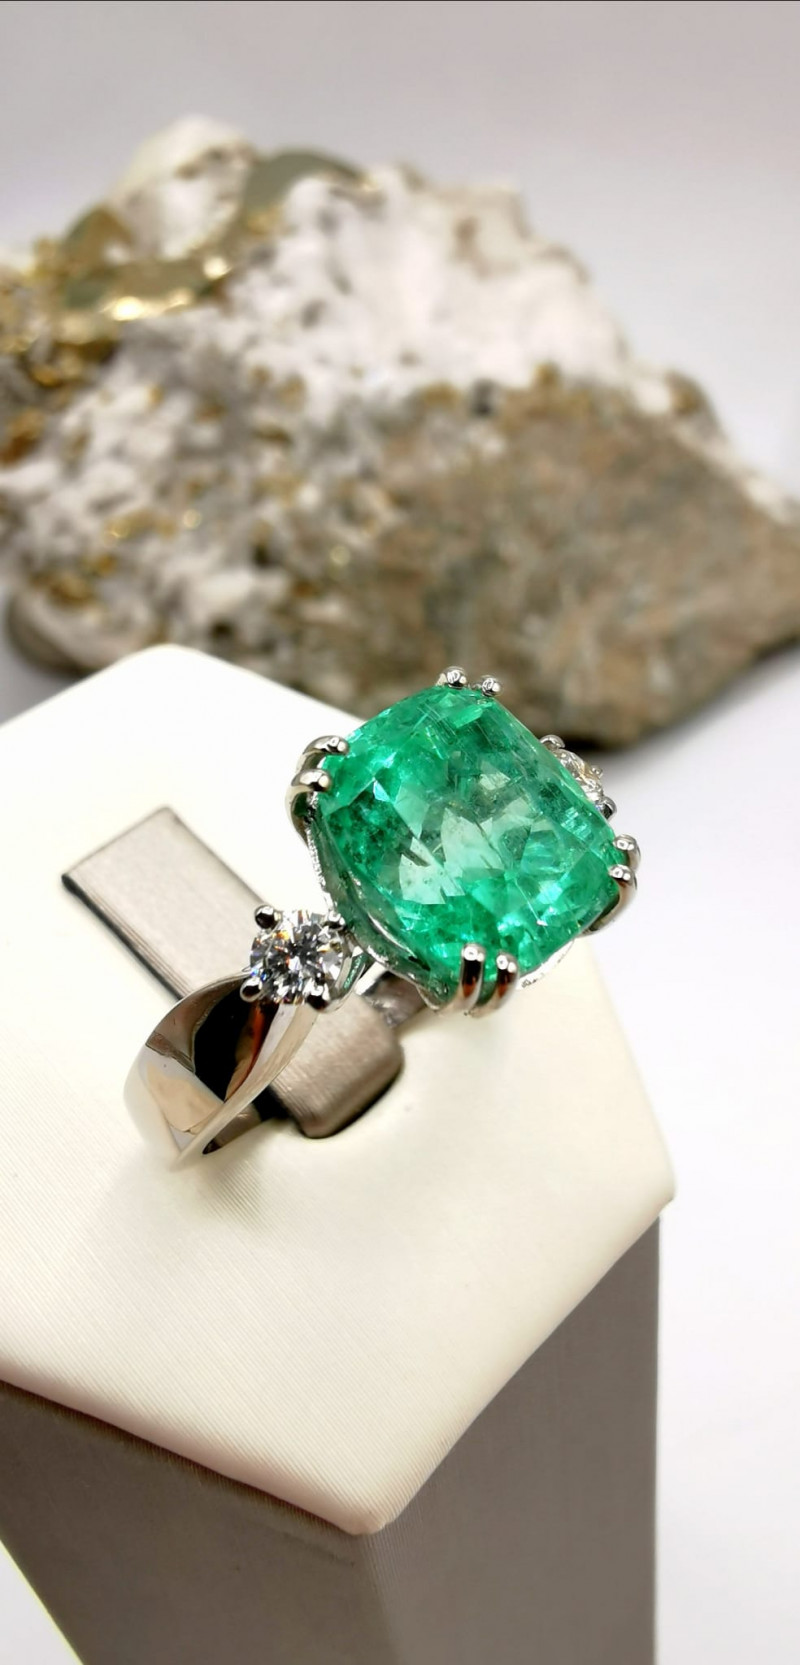 4,85ct Colombian Emerald 18k Solid Gold Ring  16/76